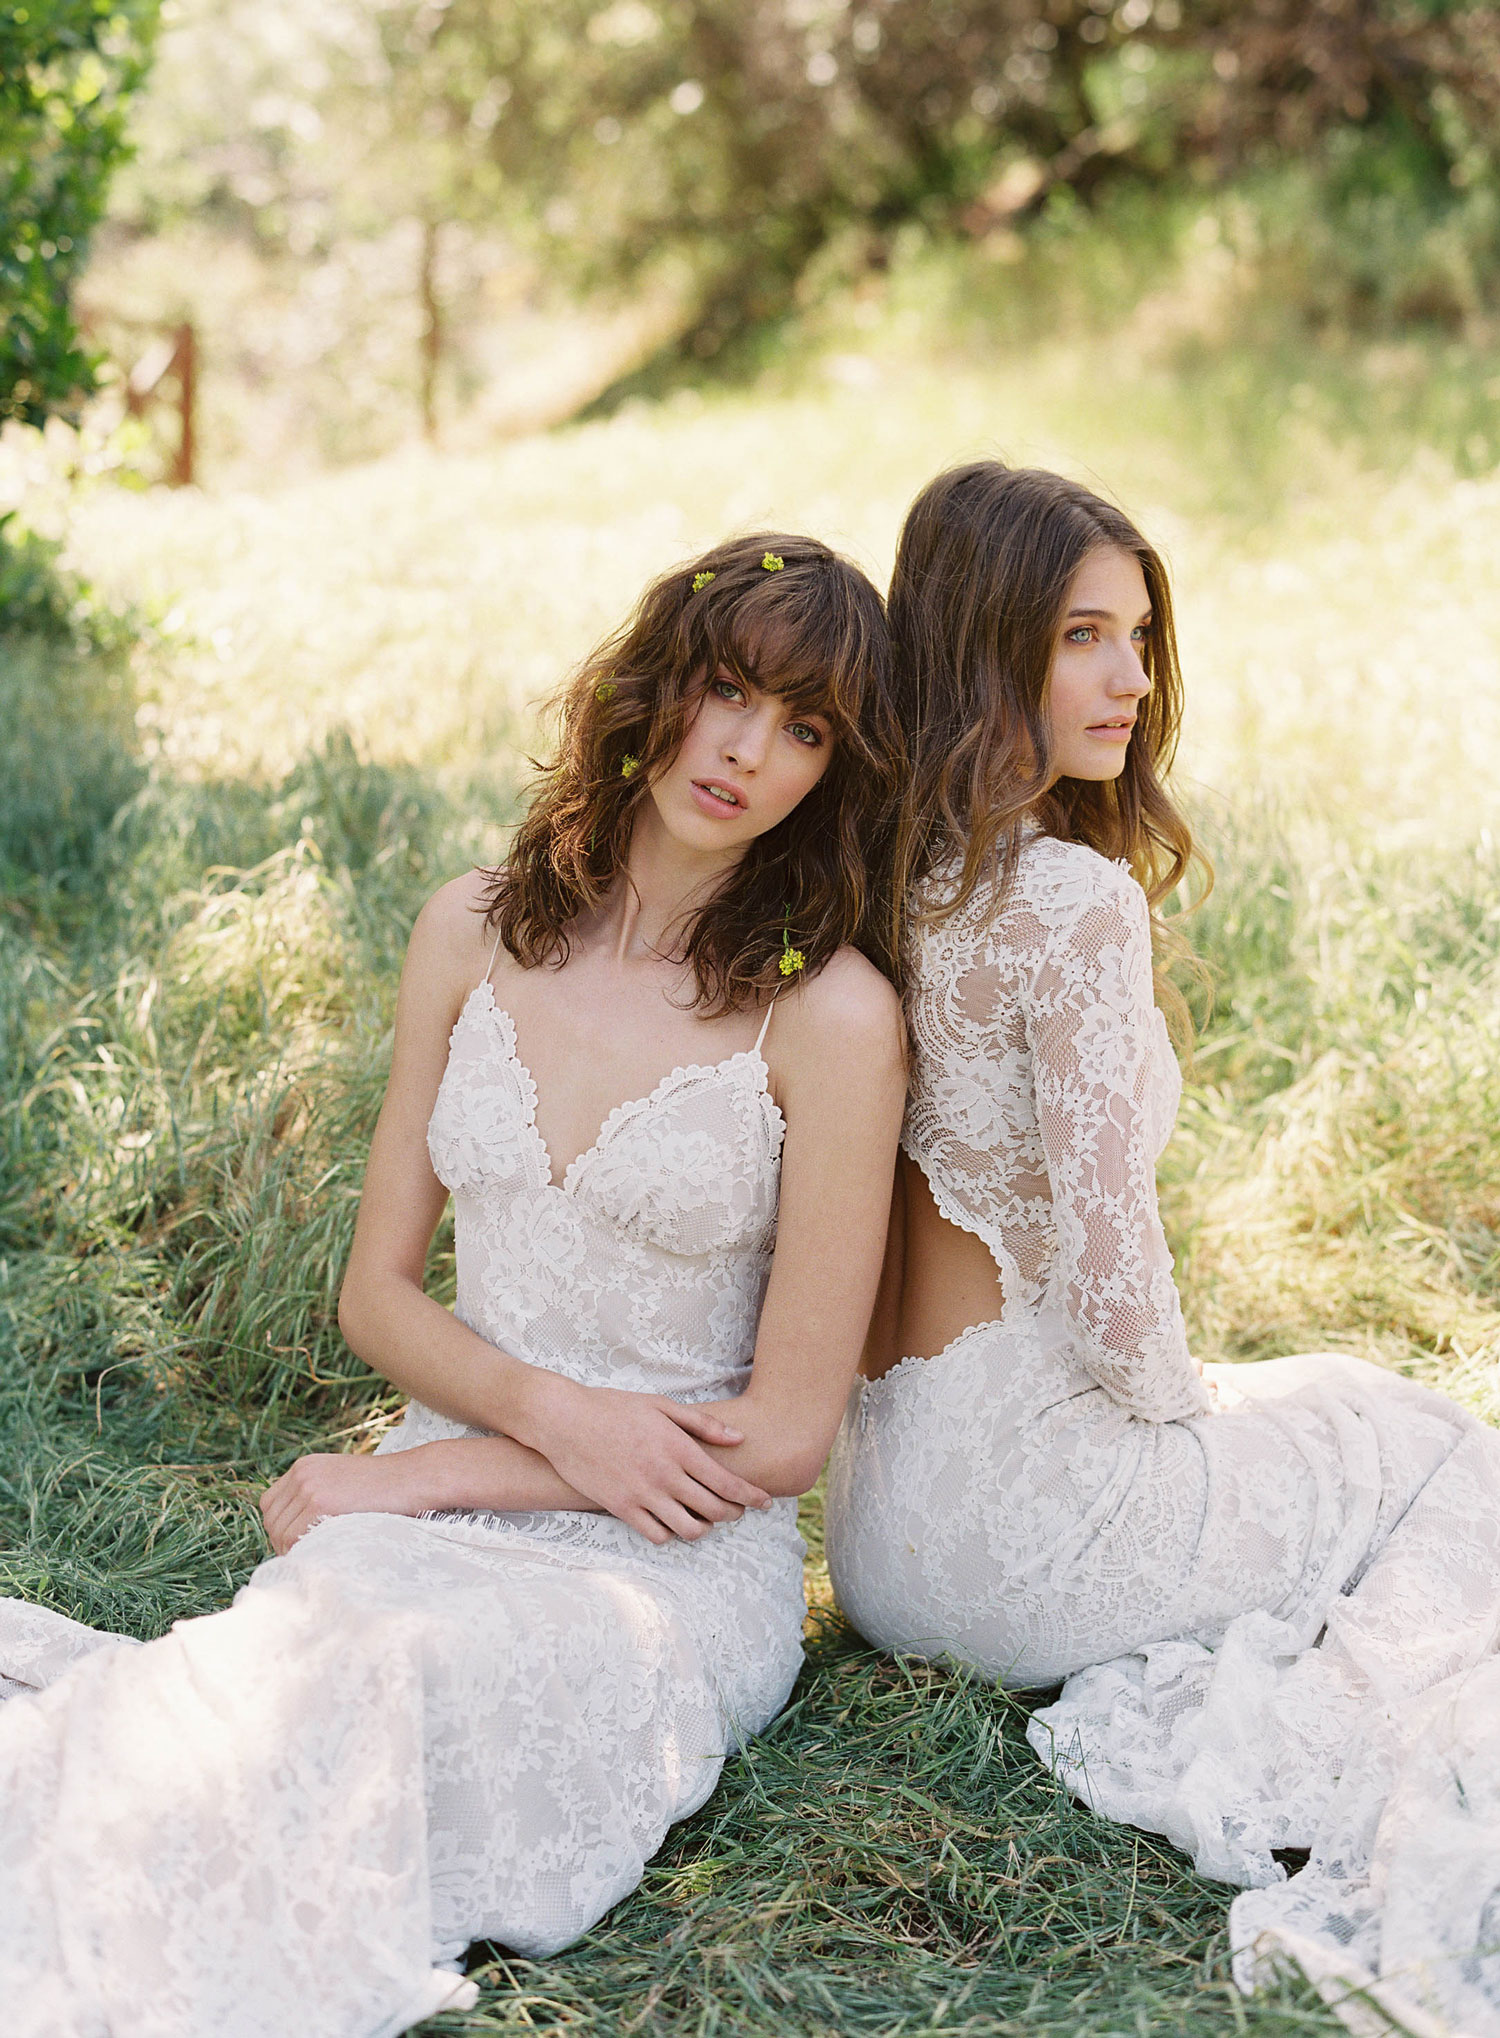 Claire Pettibone Romantique stylized shoot in Malibu California Dreamin' collection Beverly Marina wedding dress